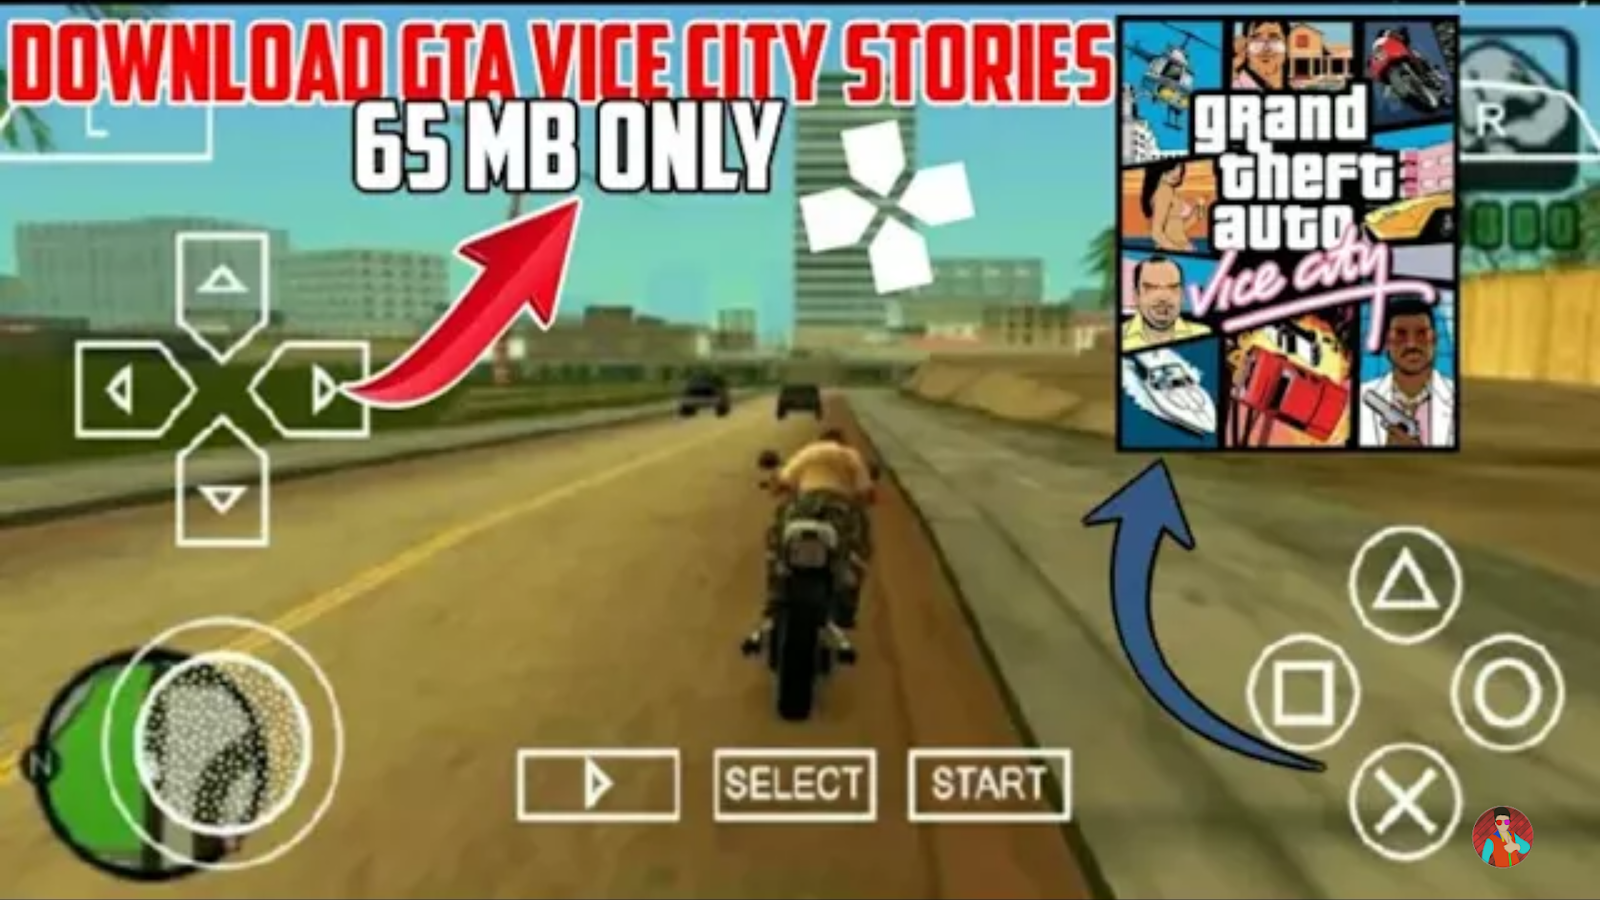 gta vice city stories download for pc highly compressed